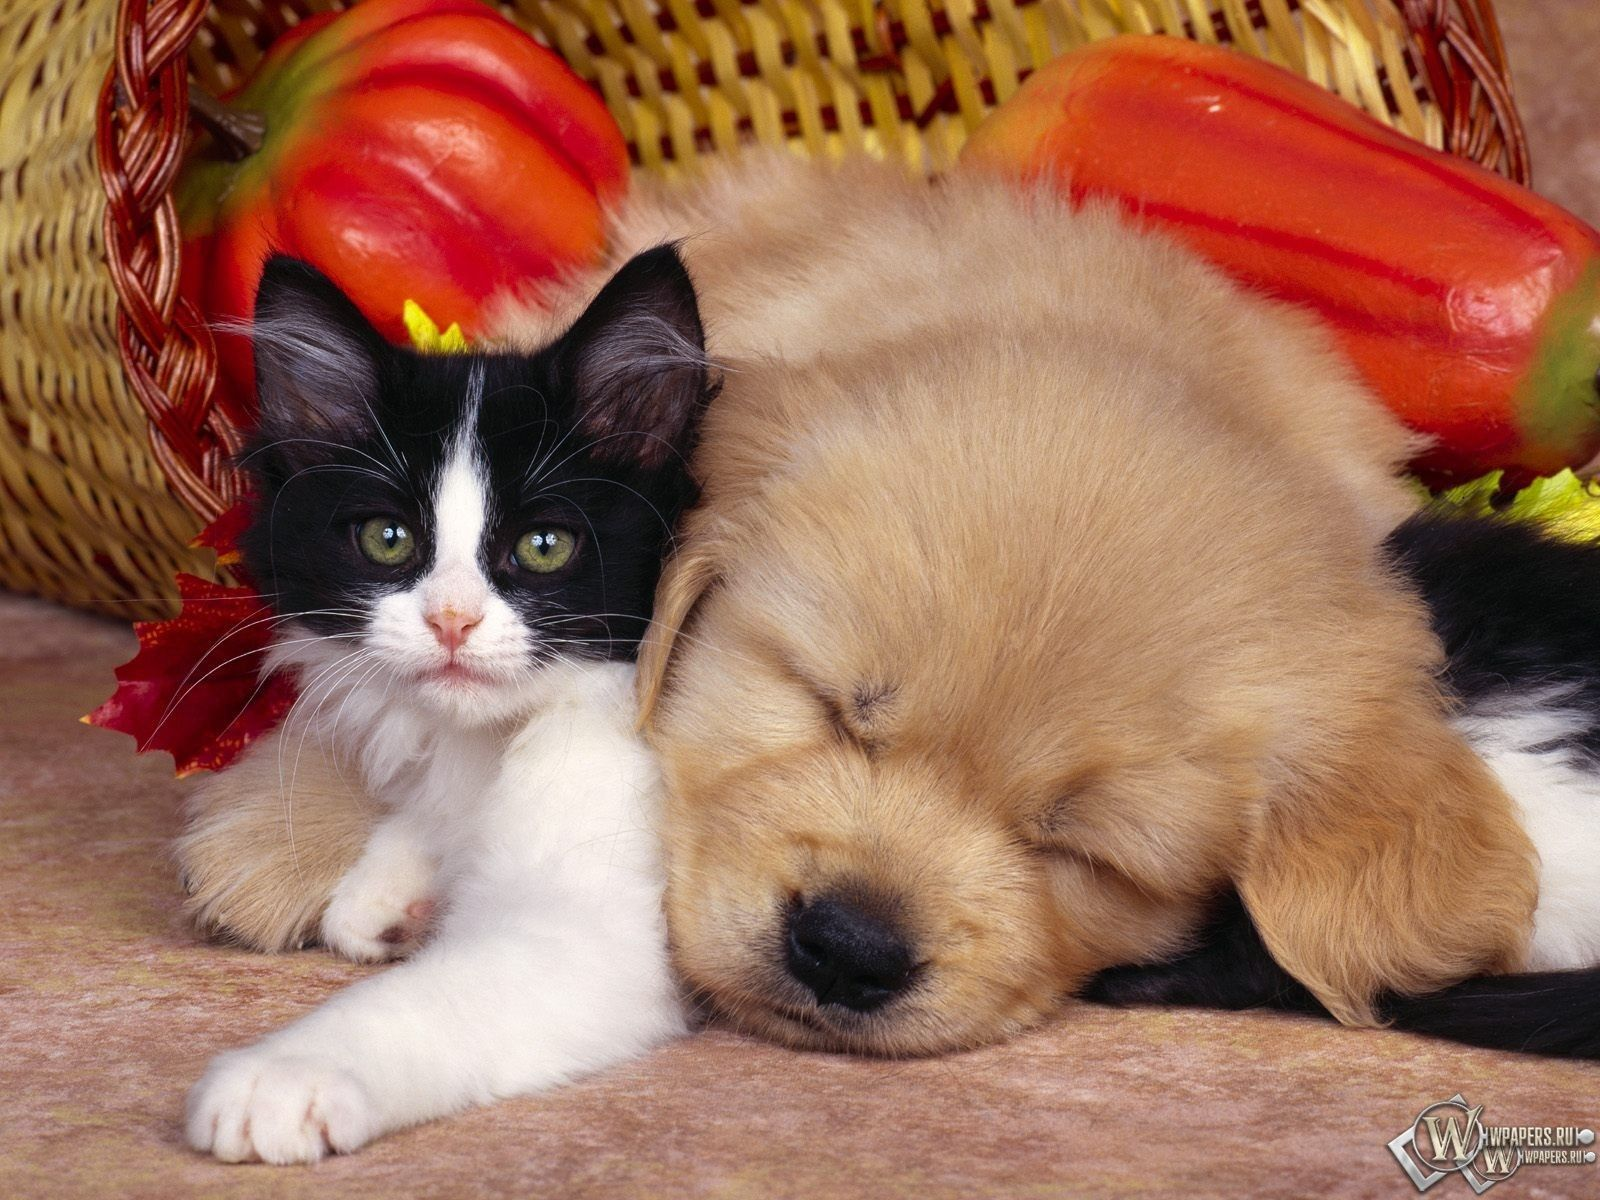 Cats Koty And Dog Cute Cats And Dogs Cute Puppies And